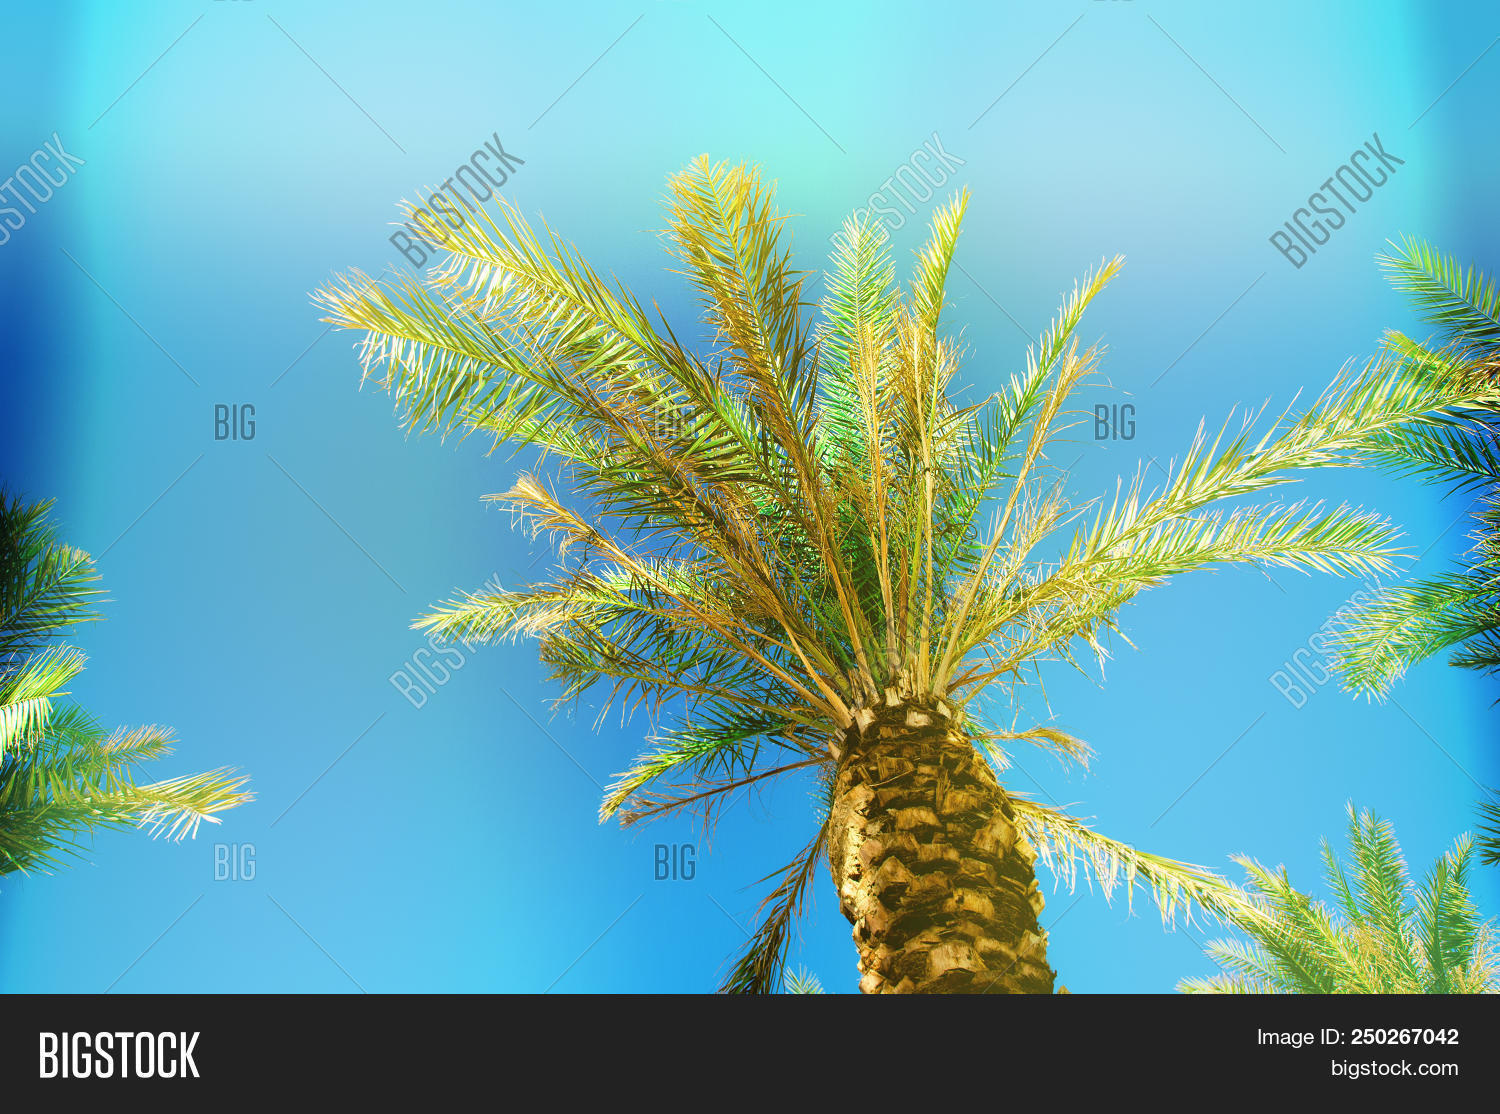 🔥 Palms With Colorful Pop Art Effect  Vintage Stylized